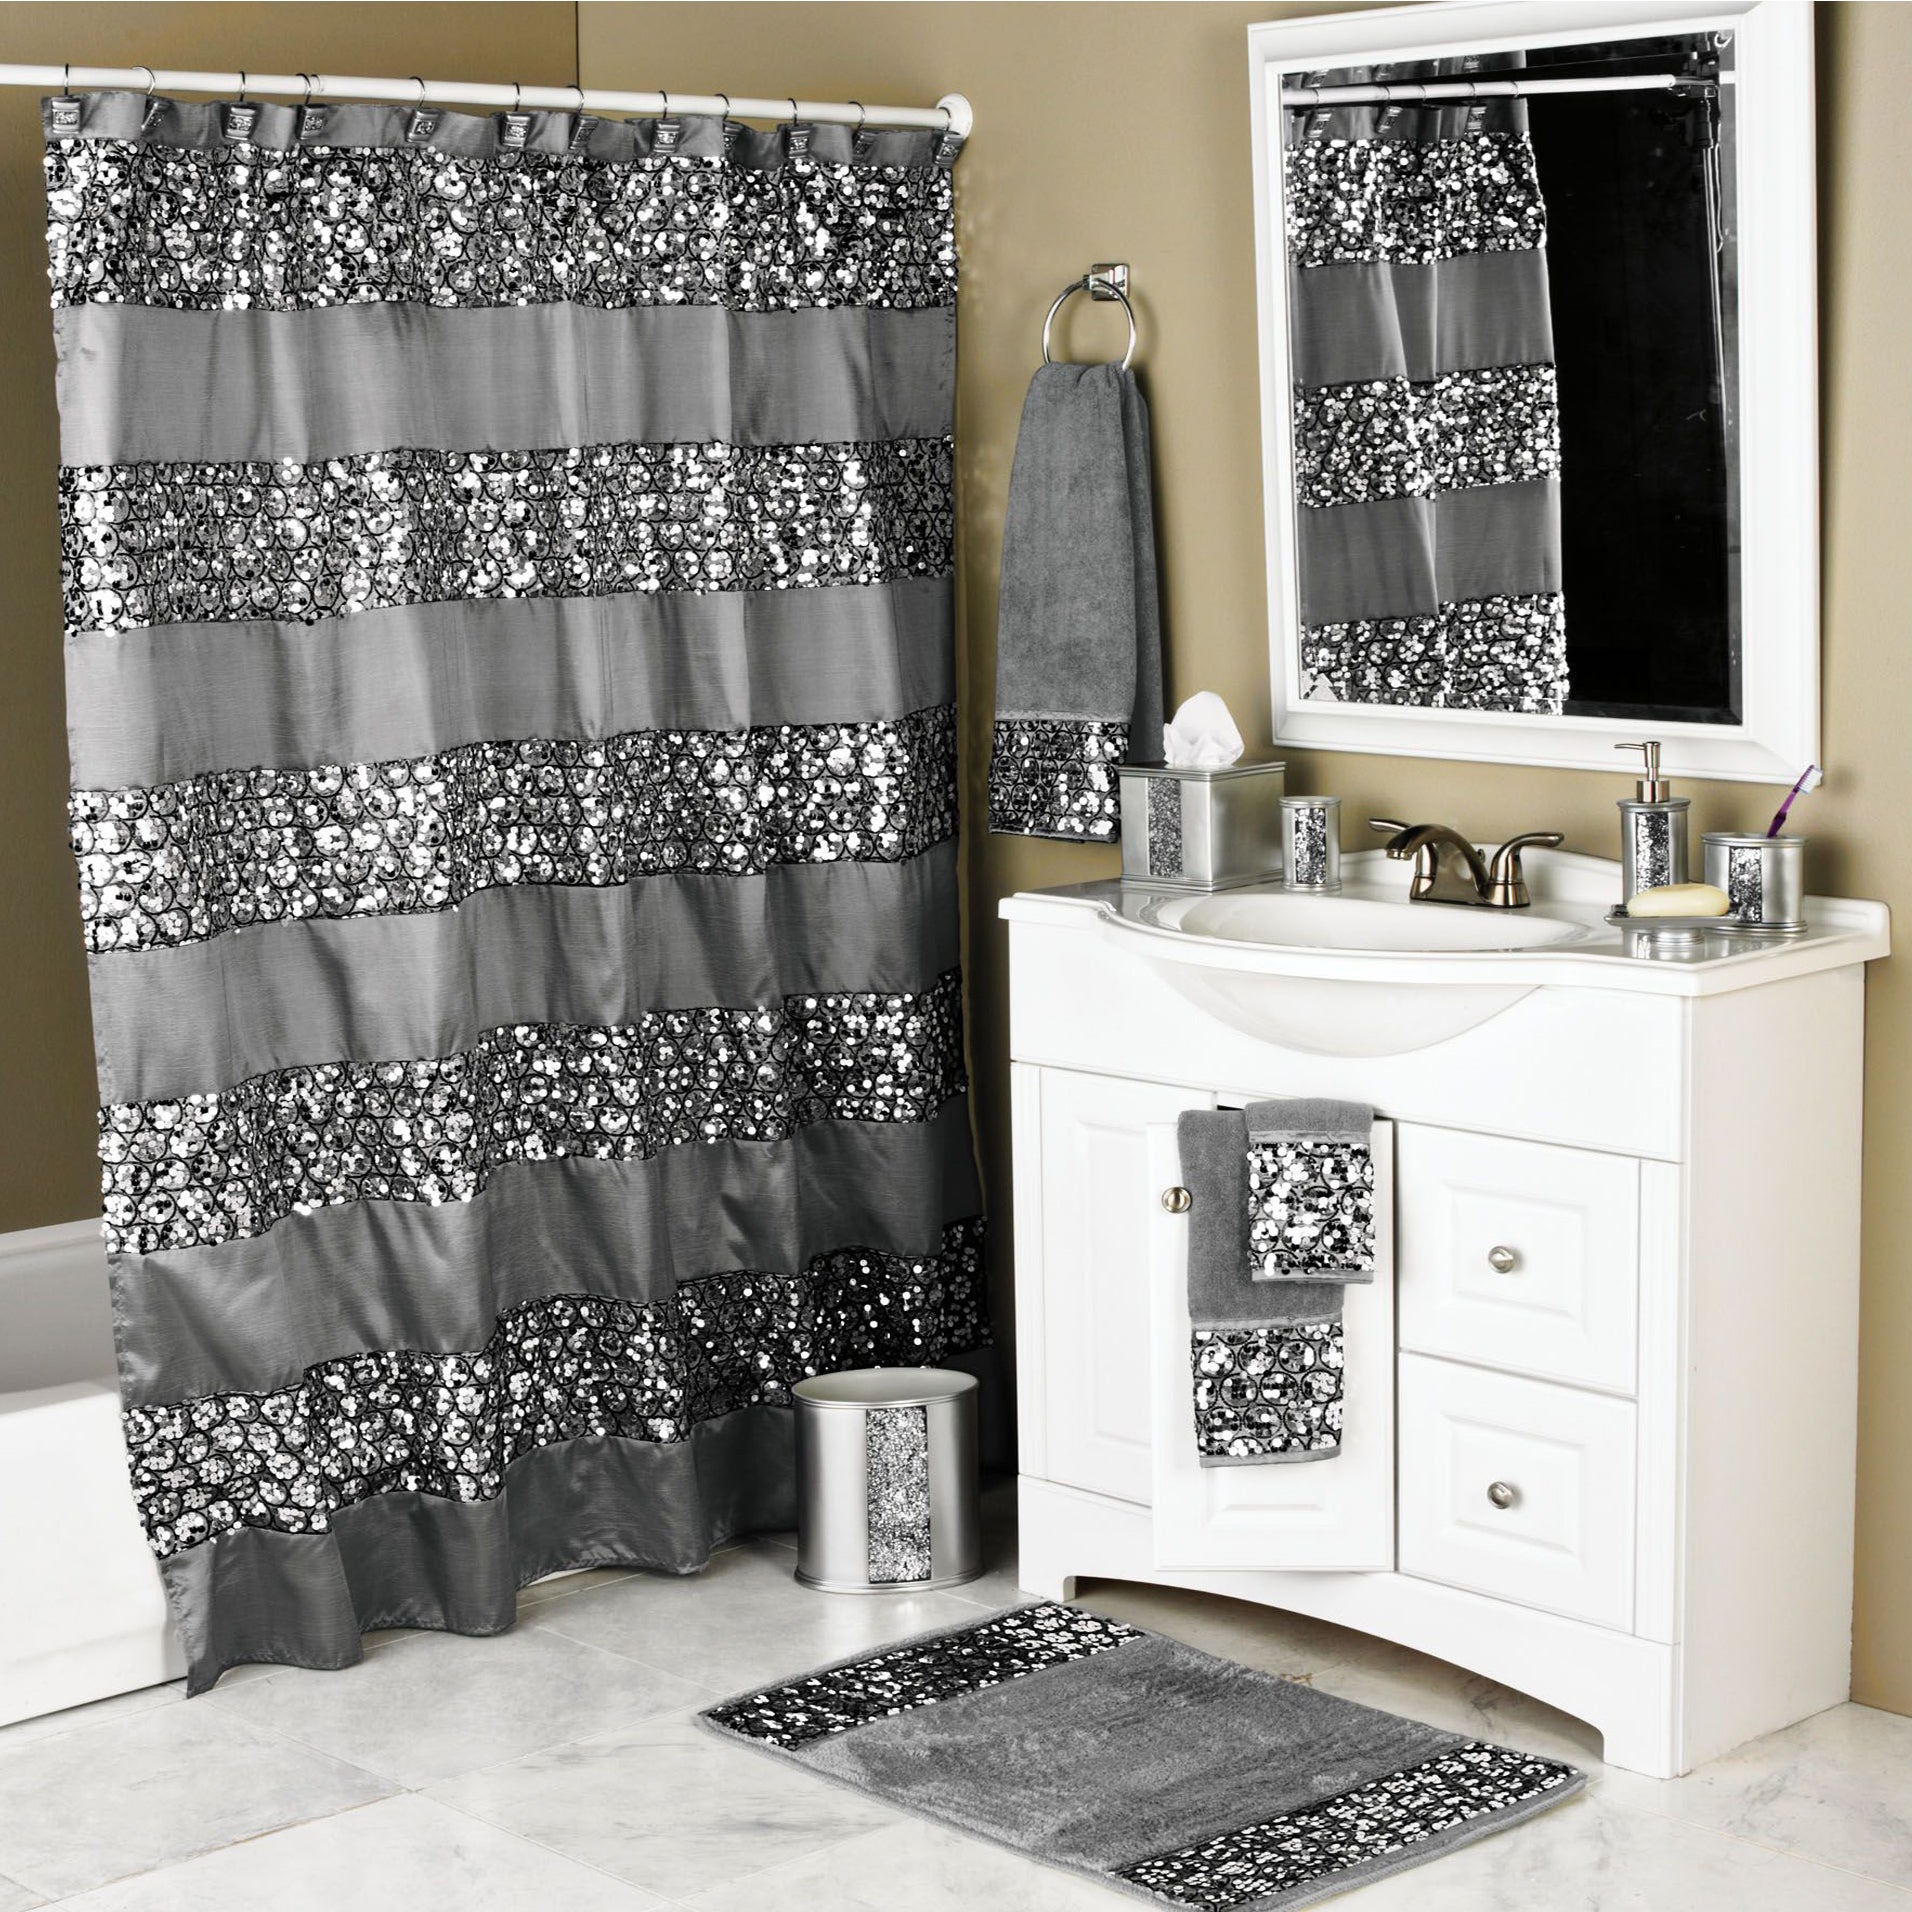 Superieur Luxury Shower Curtain And Hooks Set Or Separates